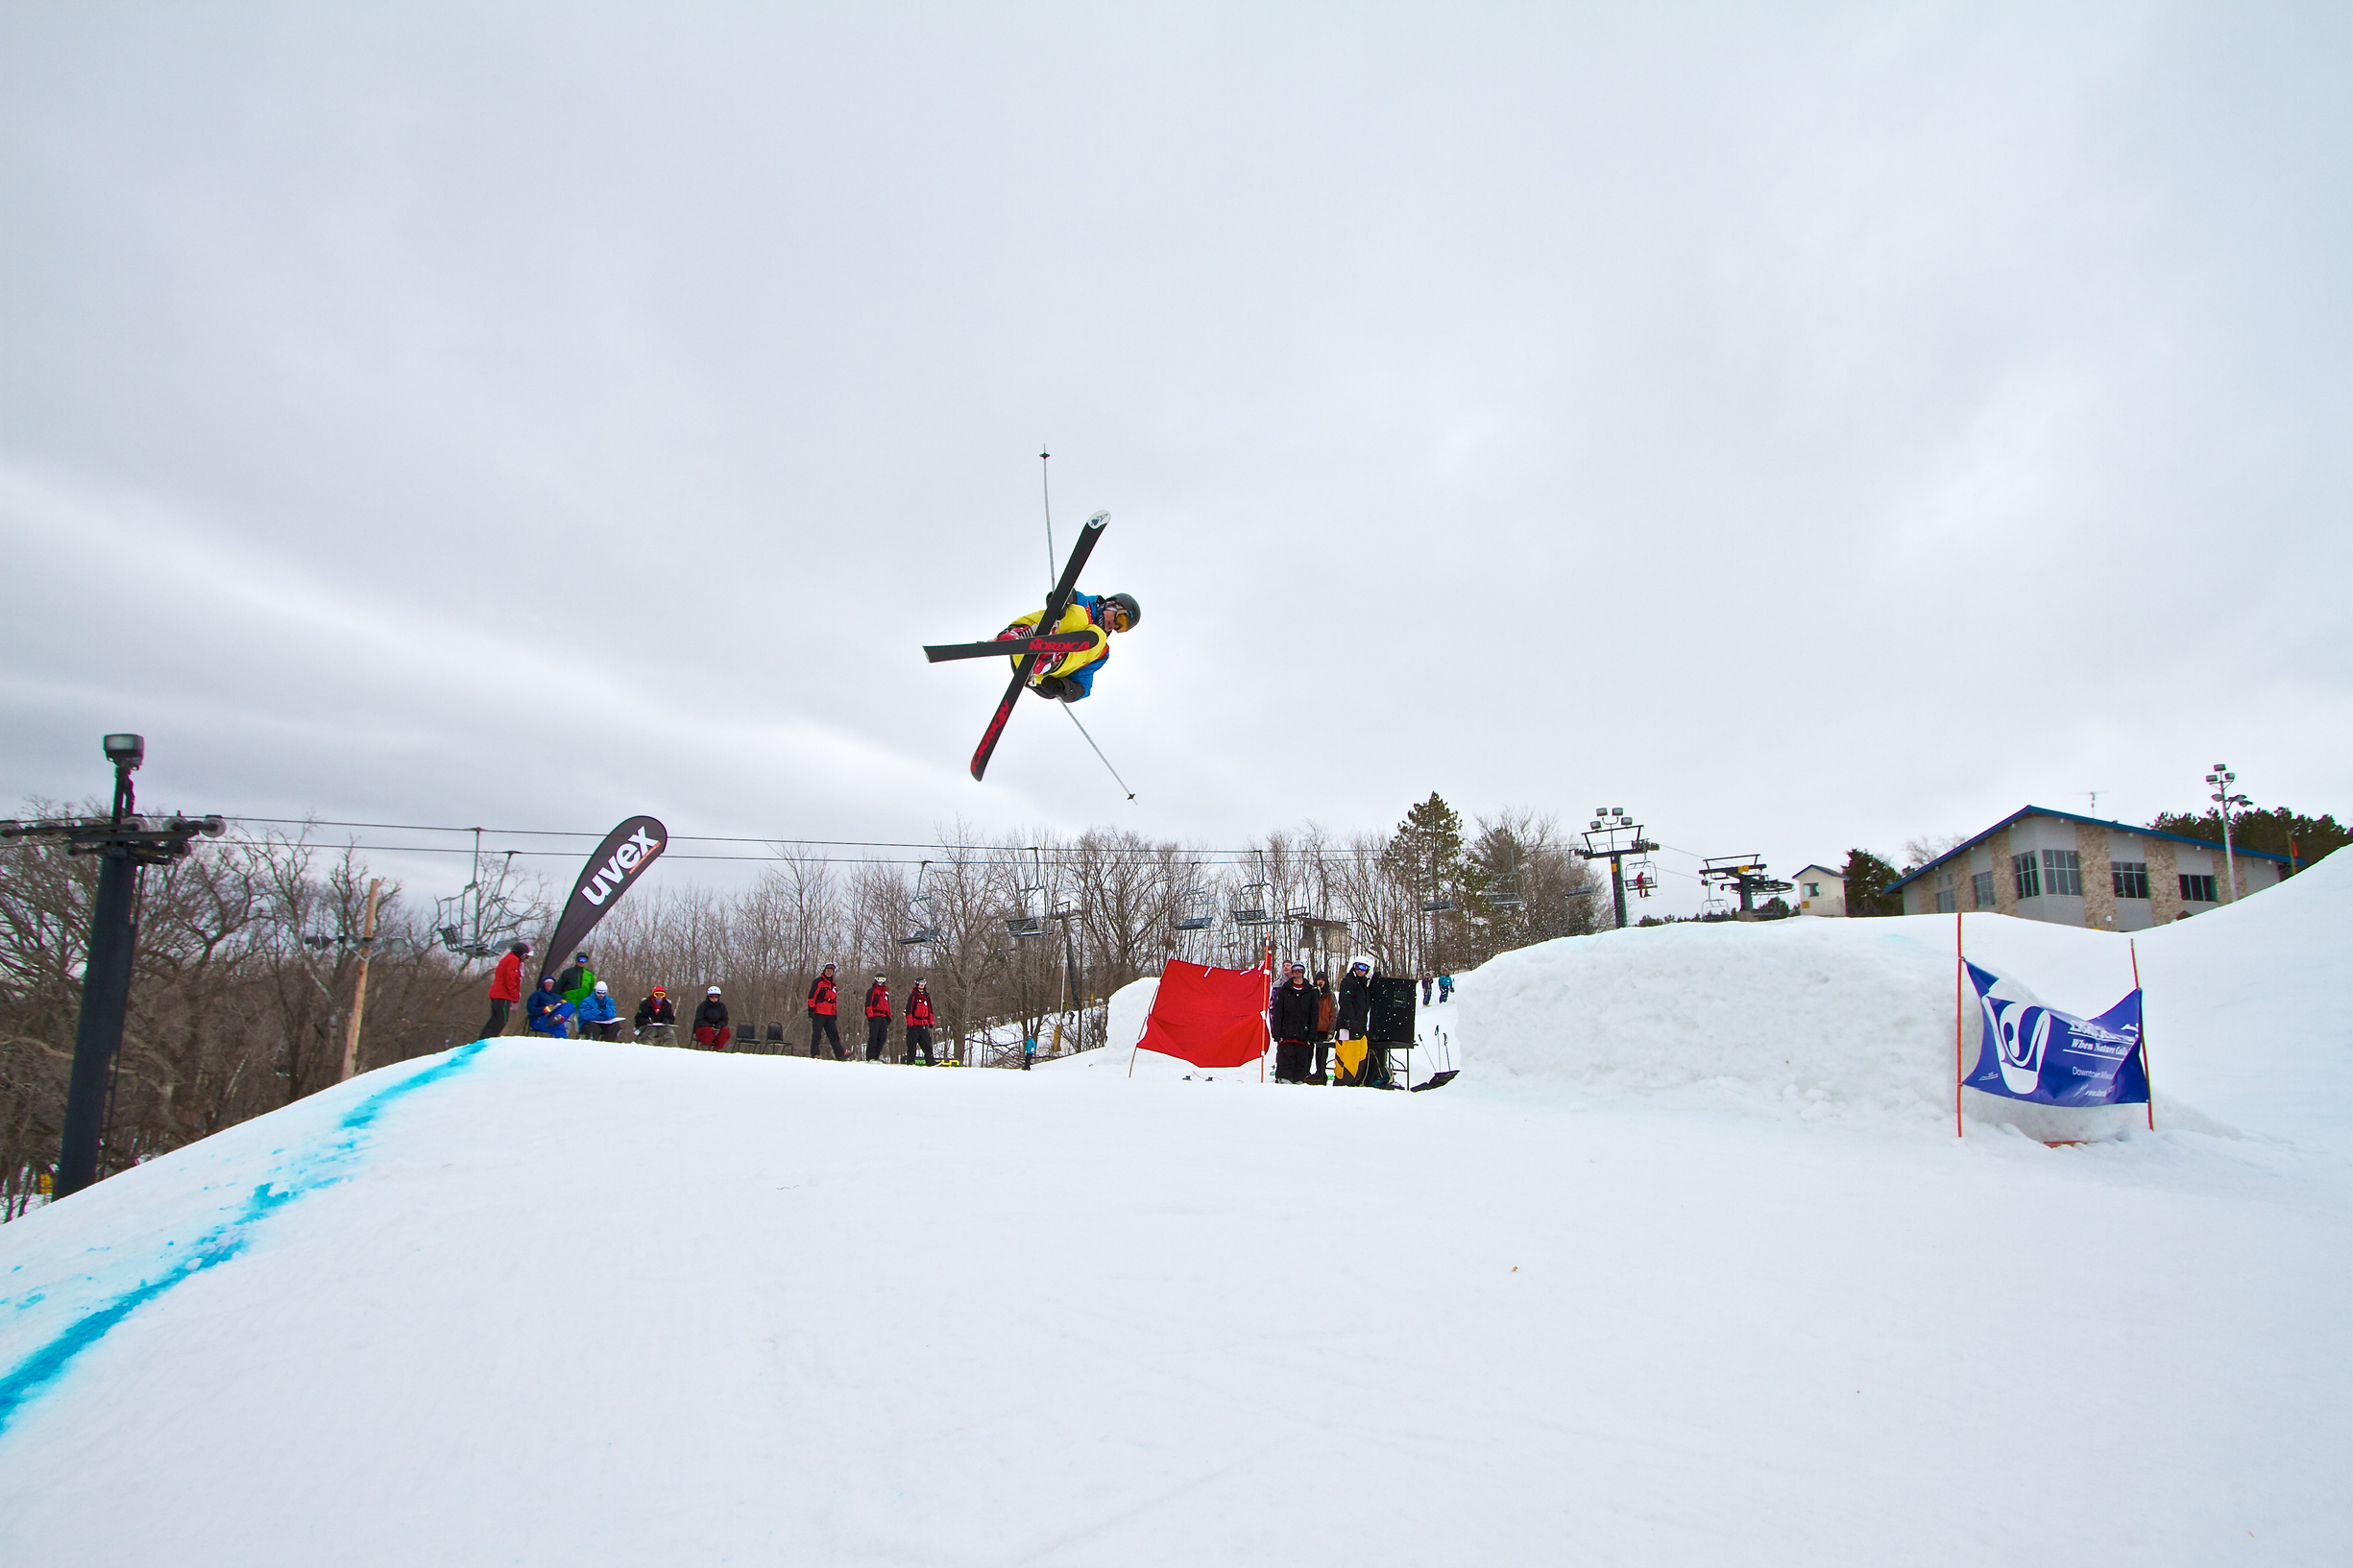 Midwest open 2011